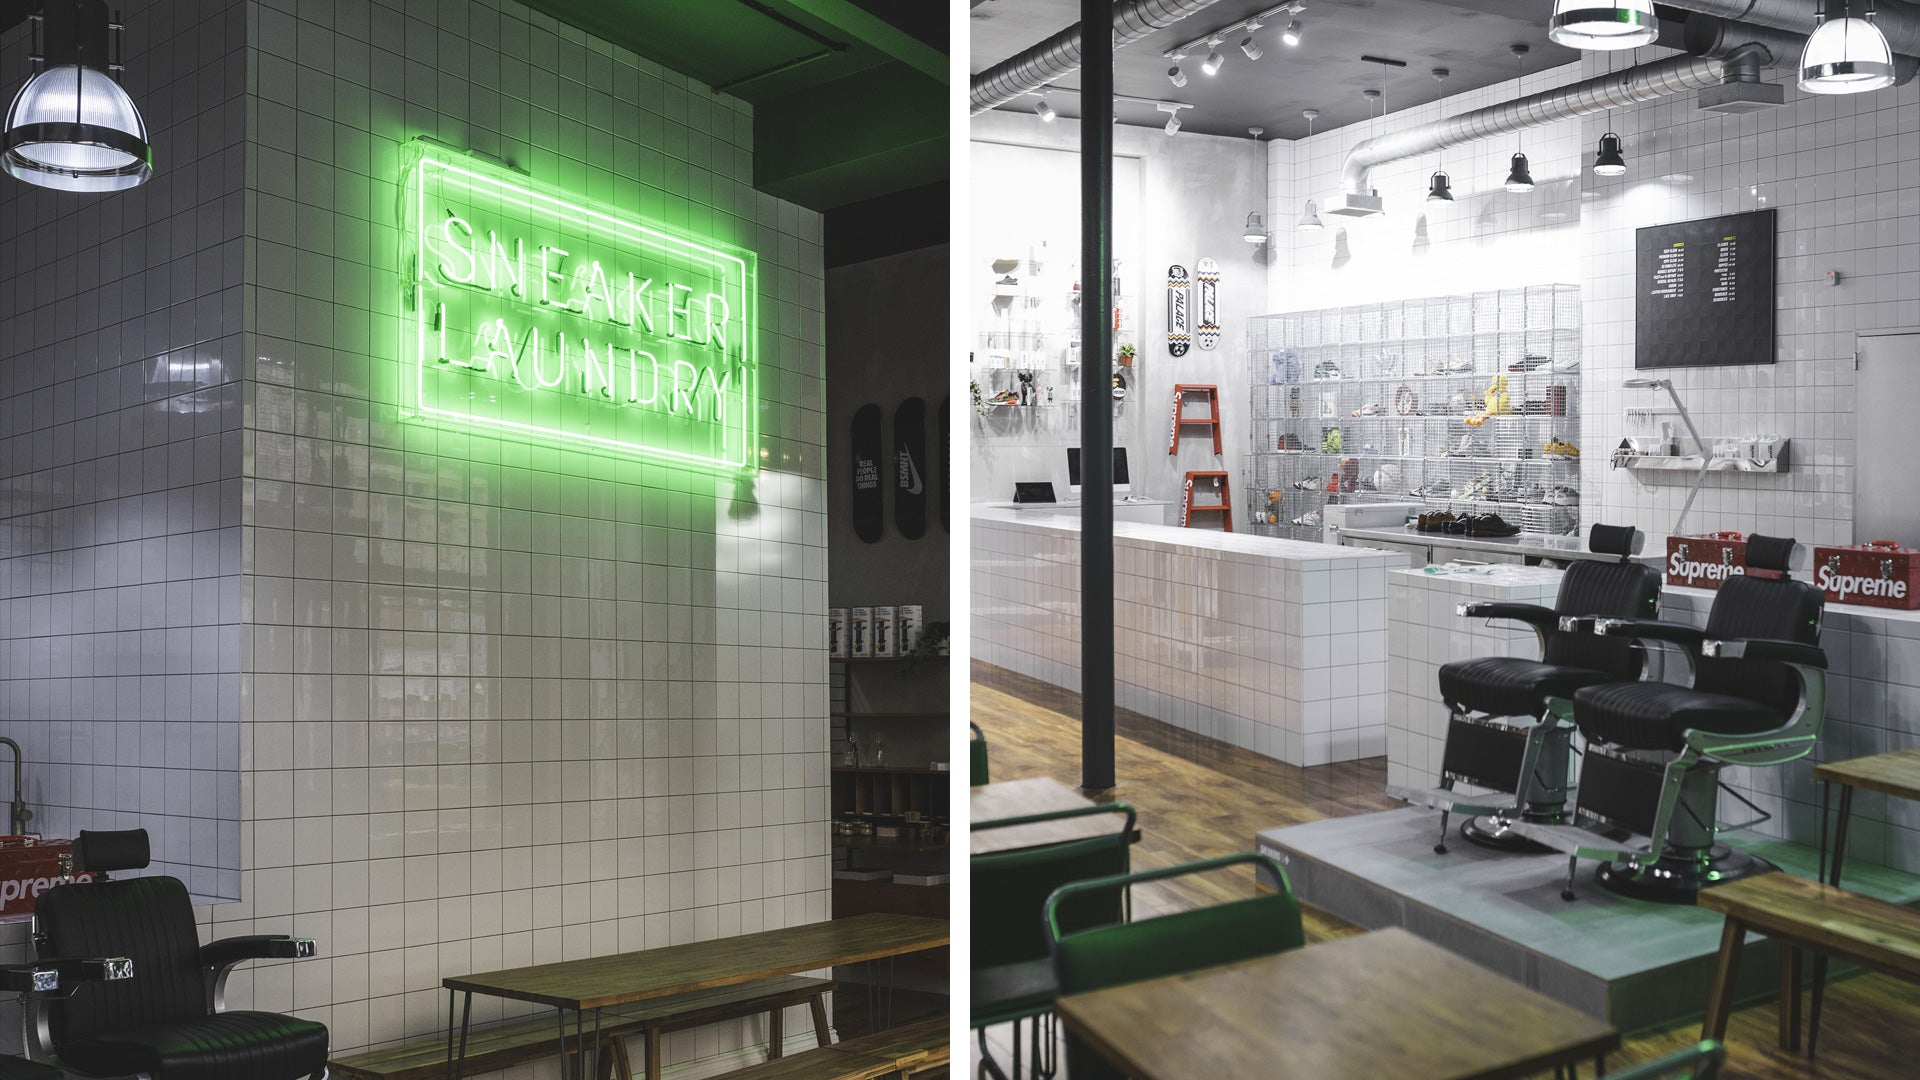 Sneaker Laundry, Café and Store